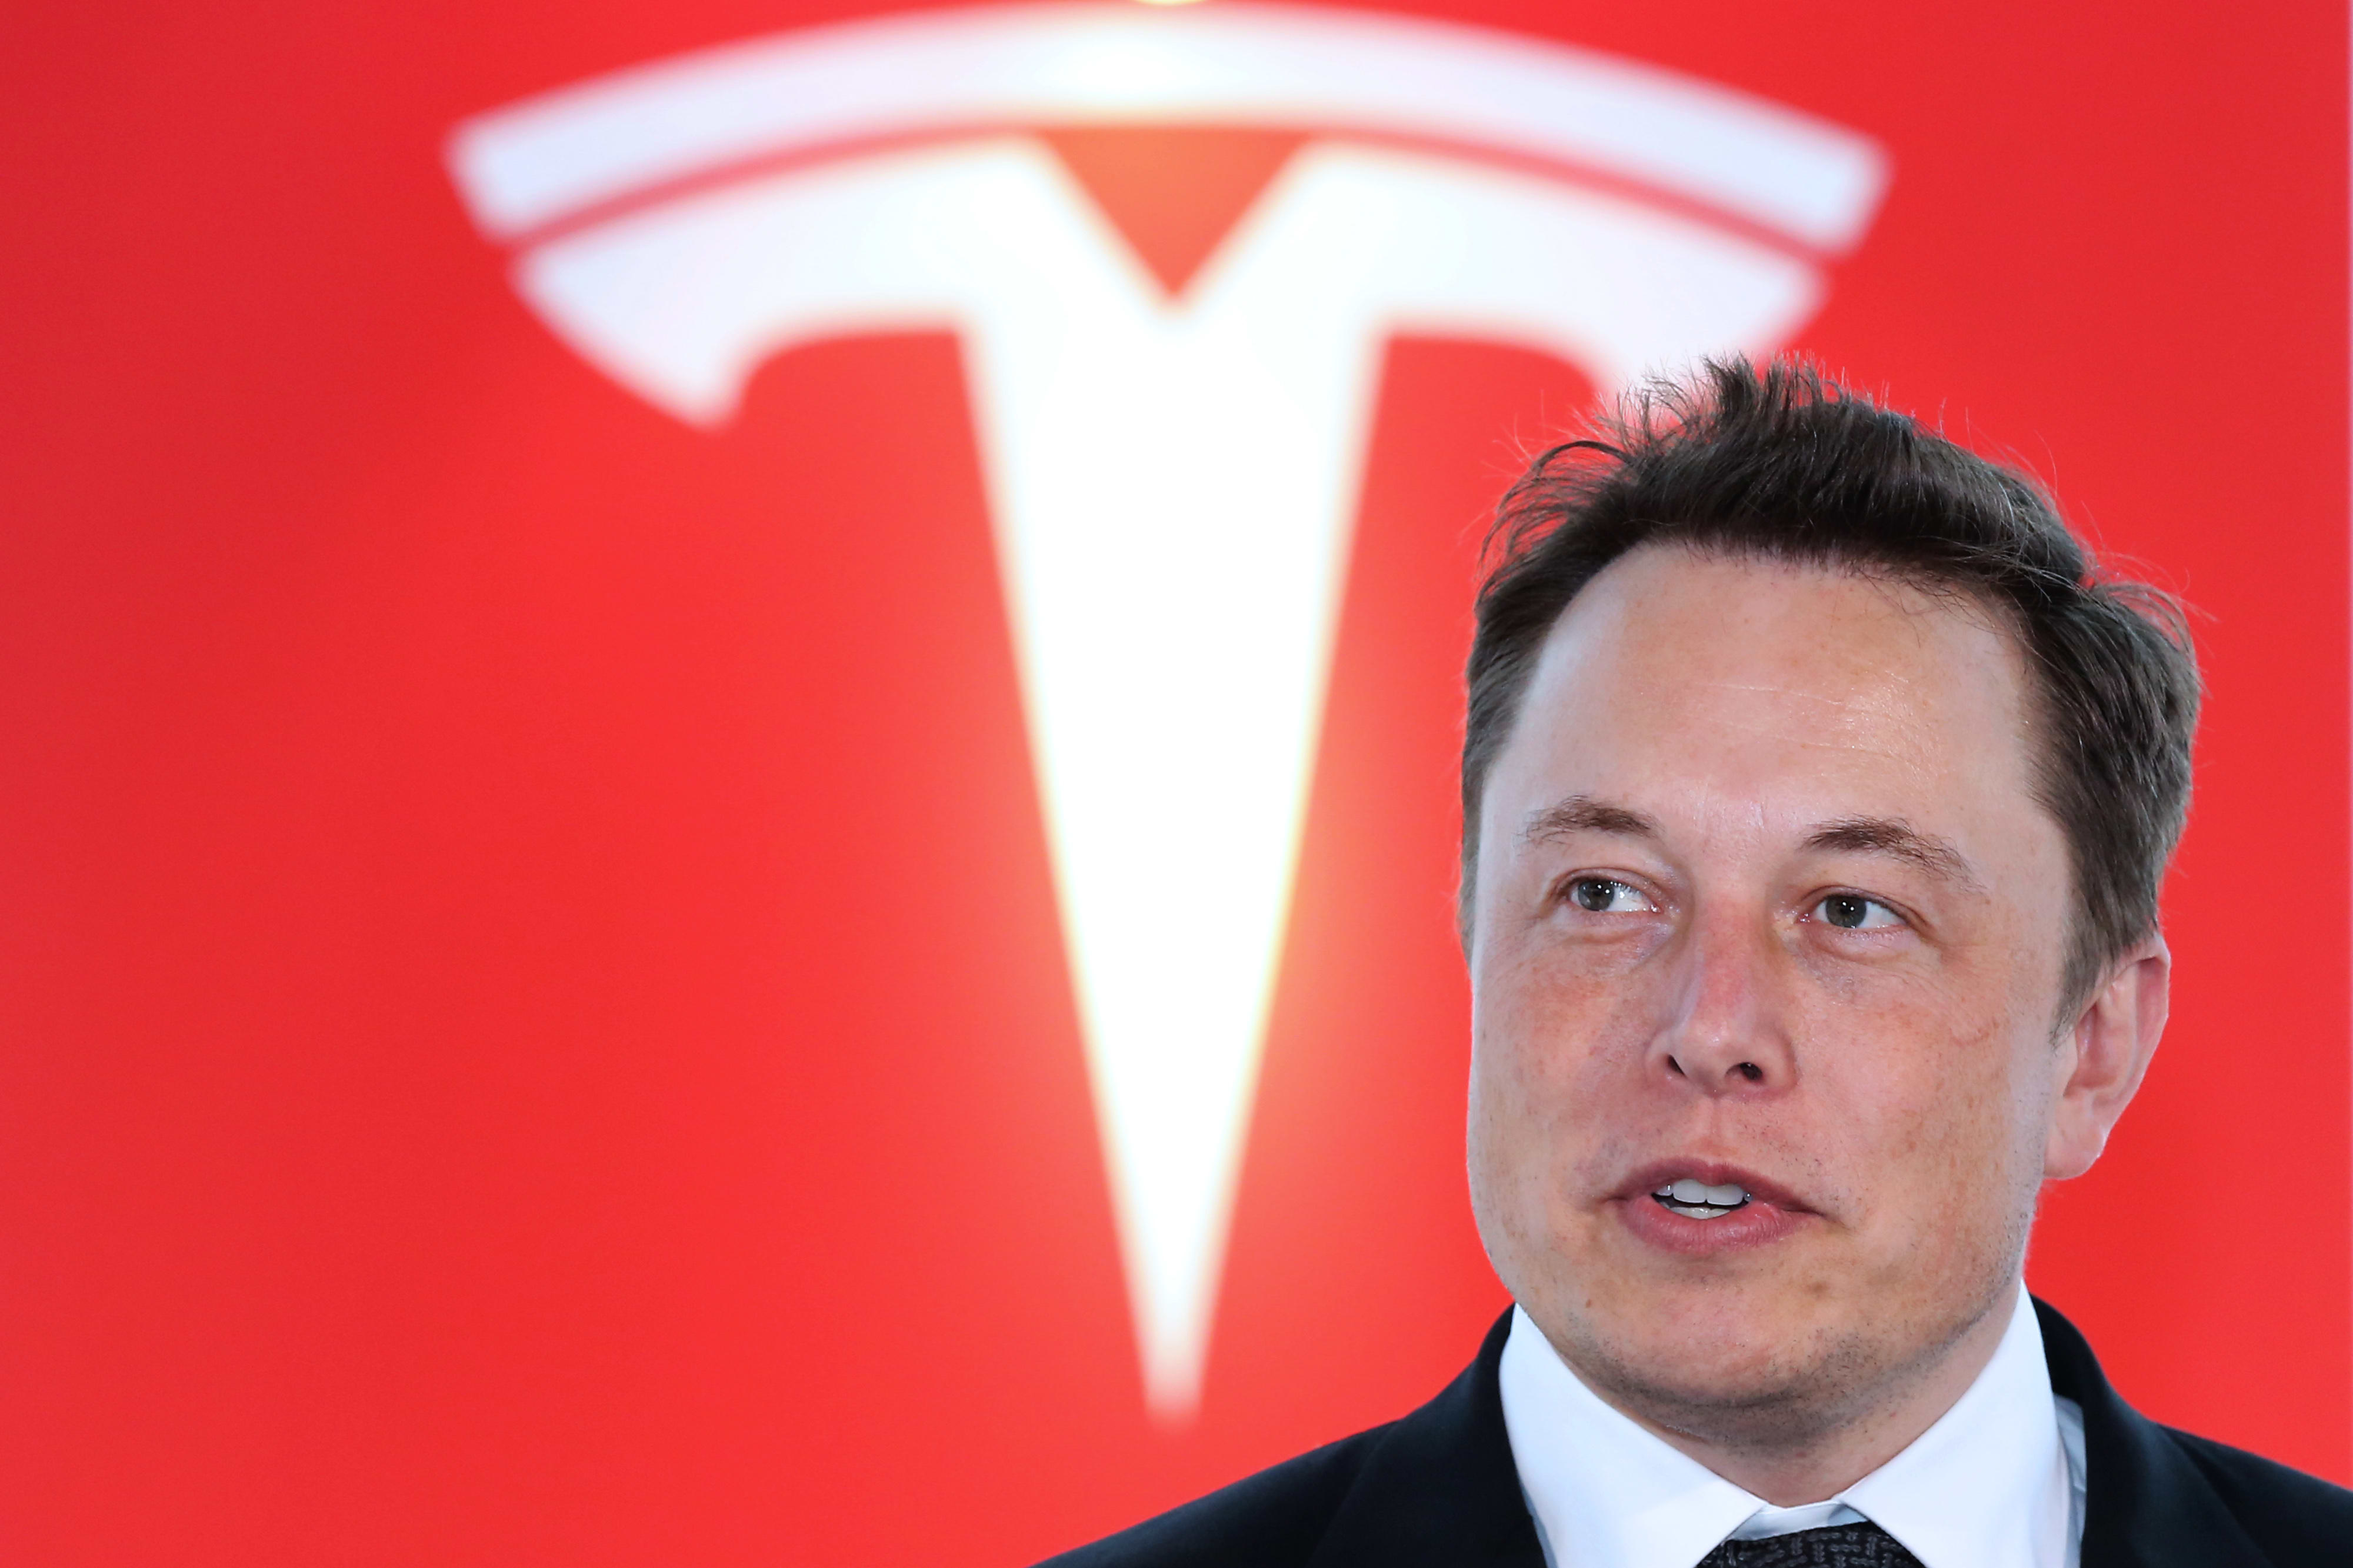 Elon Musk at Tesla shareholder meeting: 'It won't be long before we have a 400-mile range car'